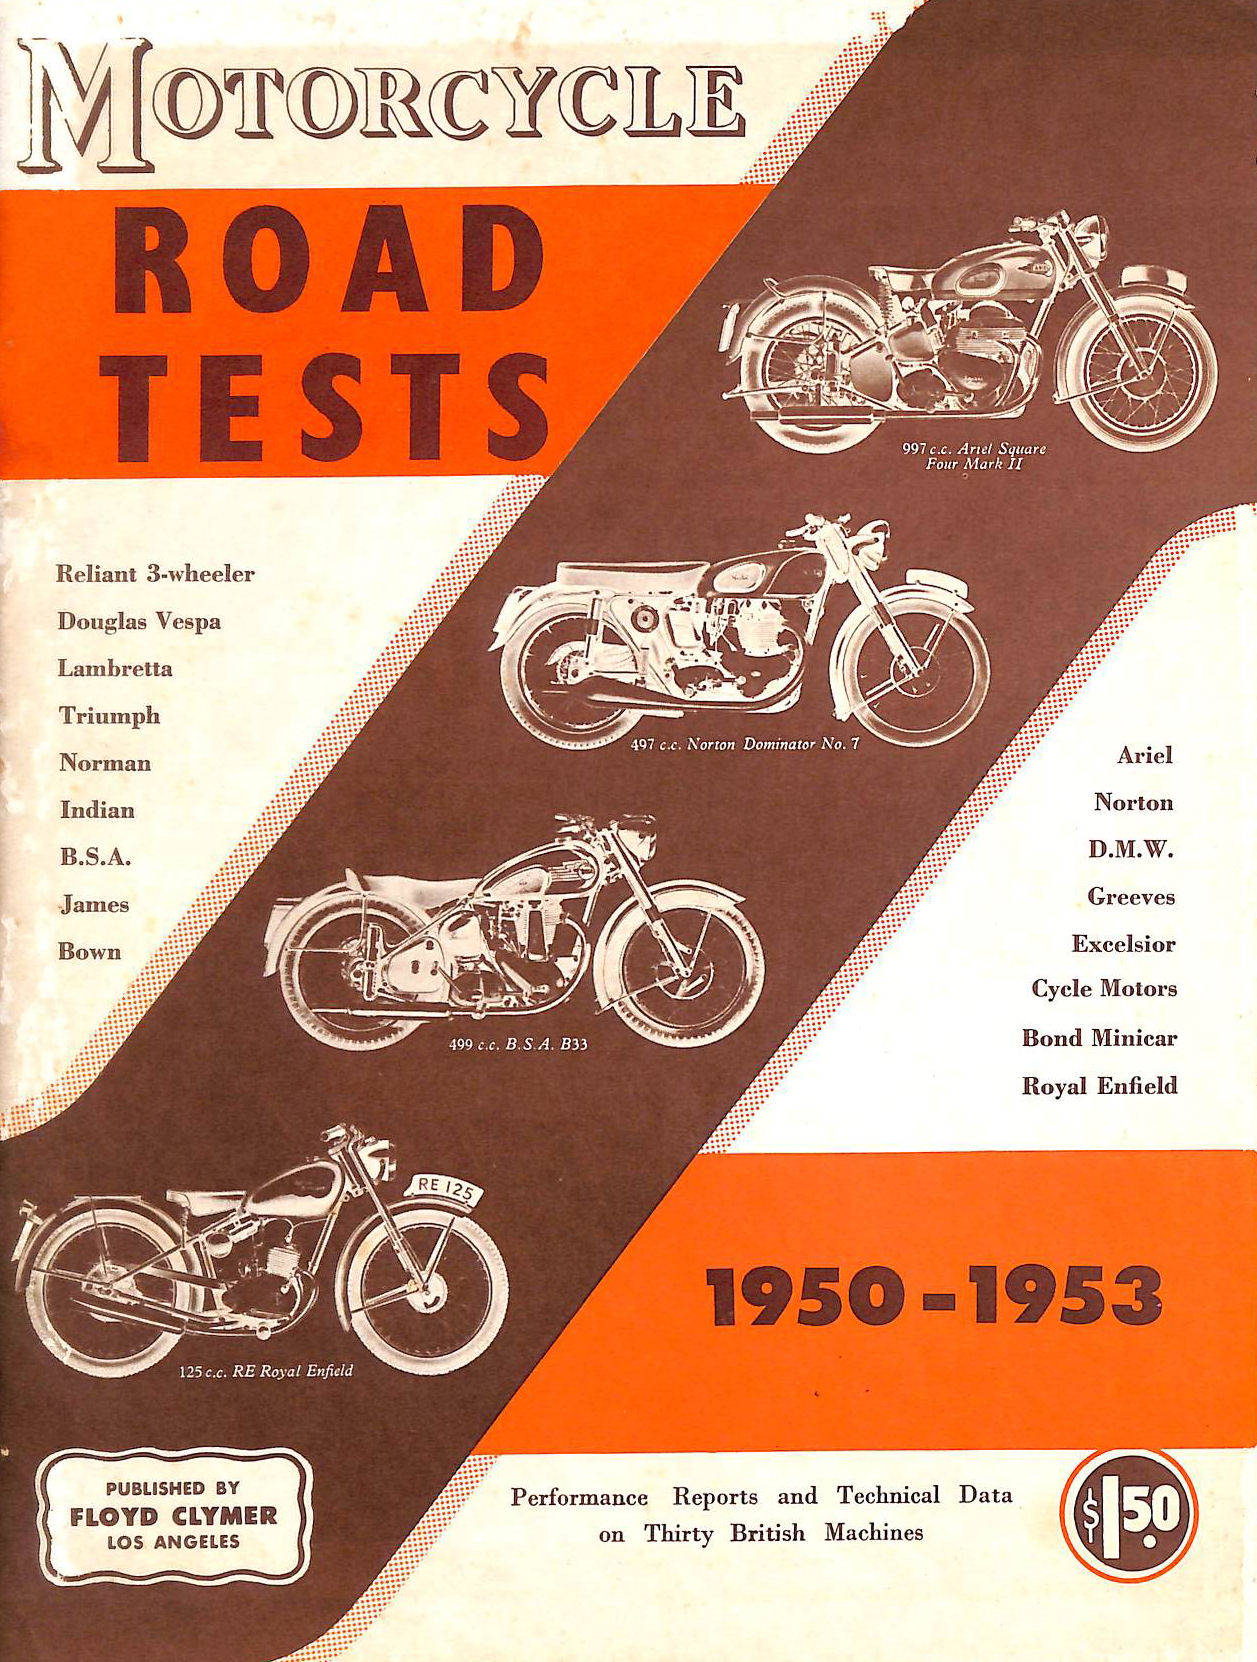 Image for The Motorcycle Road Tests 1950-1953 Second Series